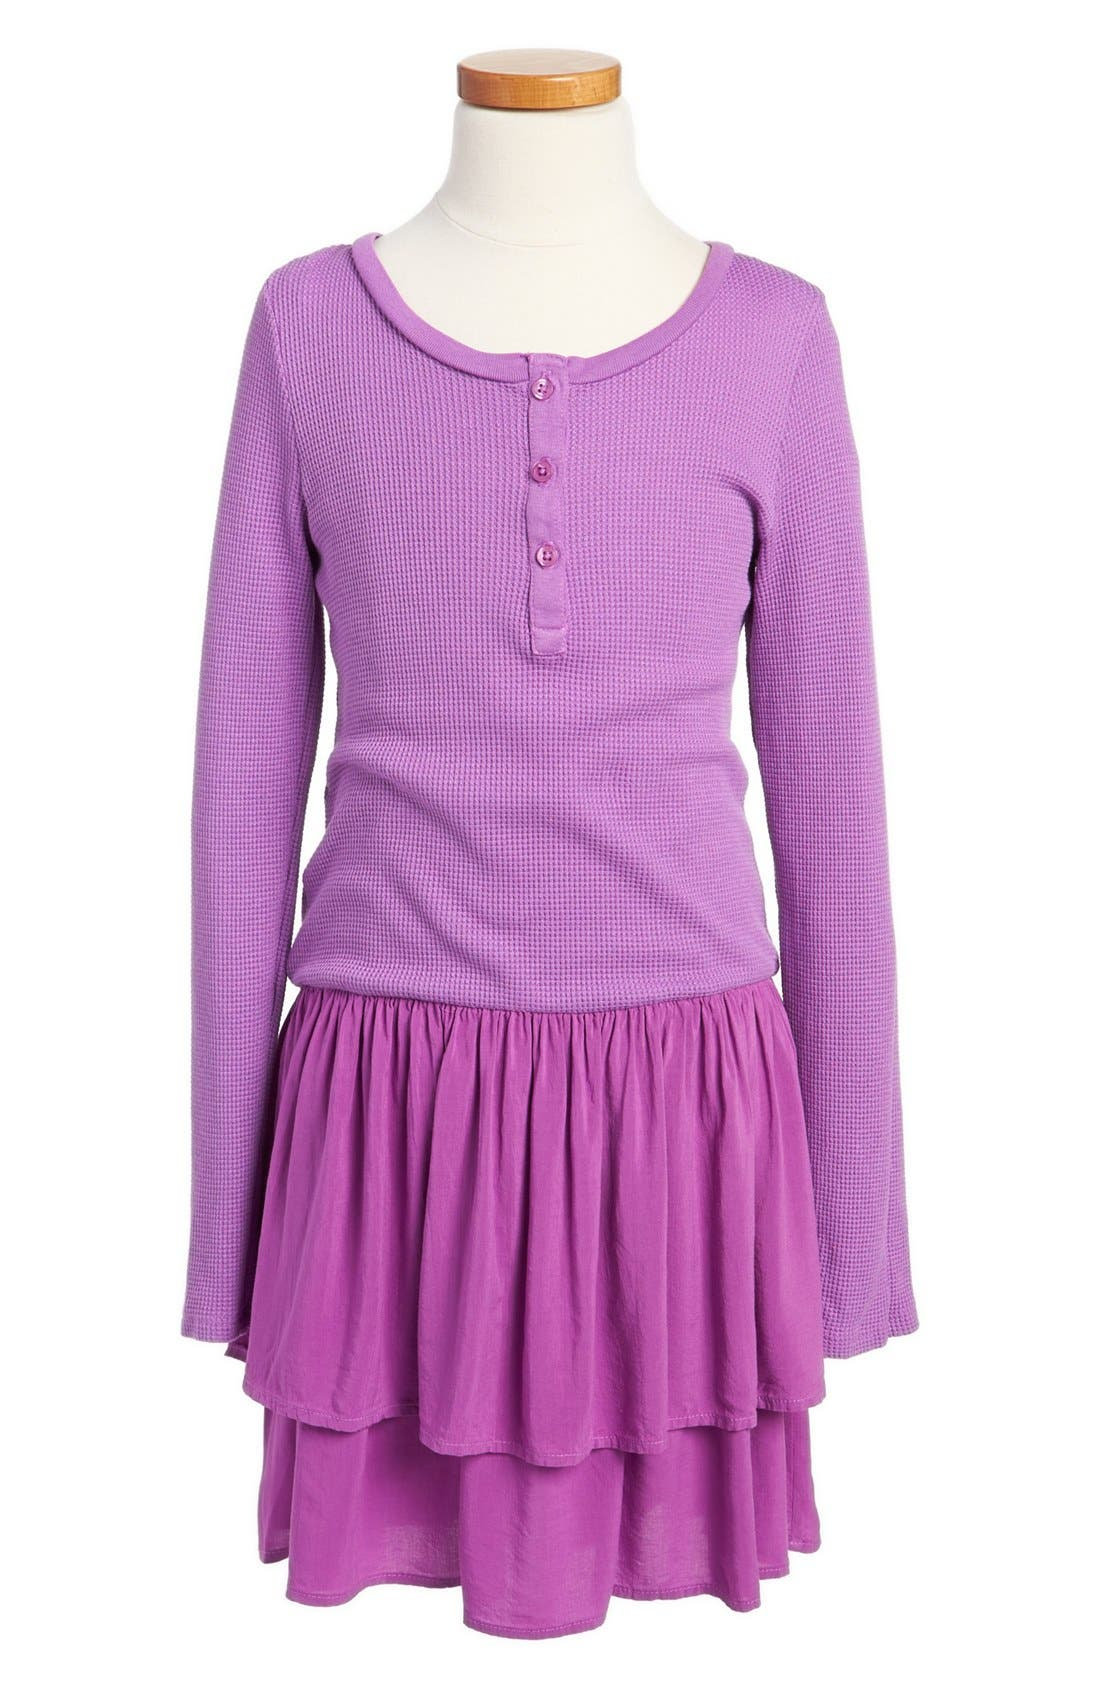 Main Image - Splendid Thermal Henley Dress (Big Girls)